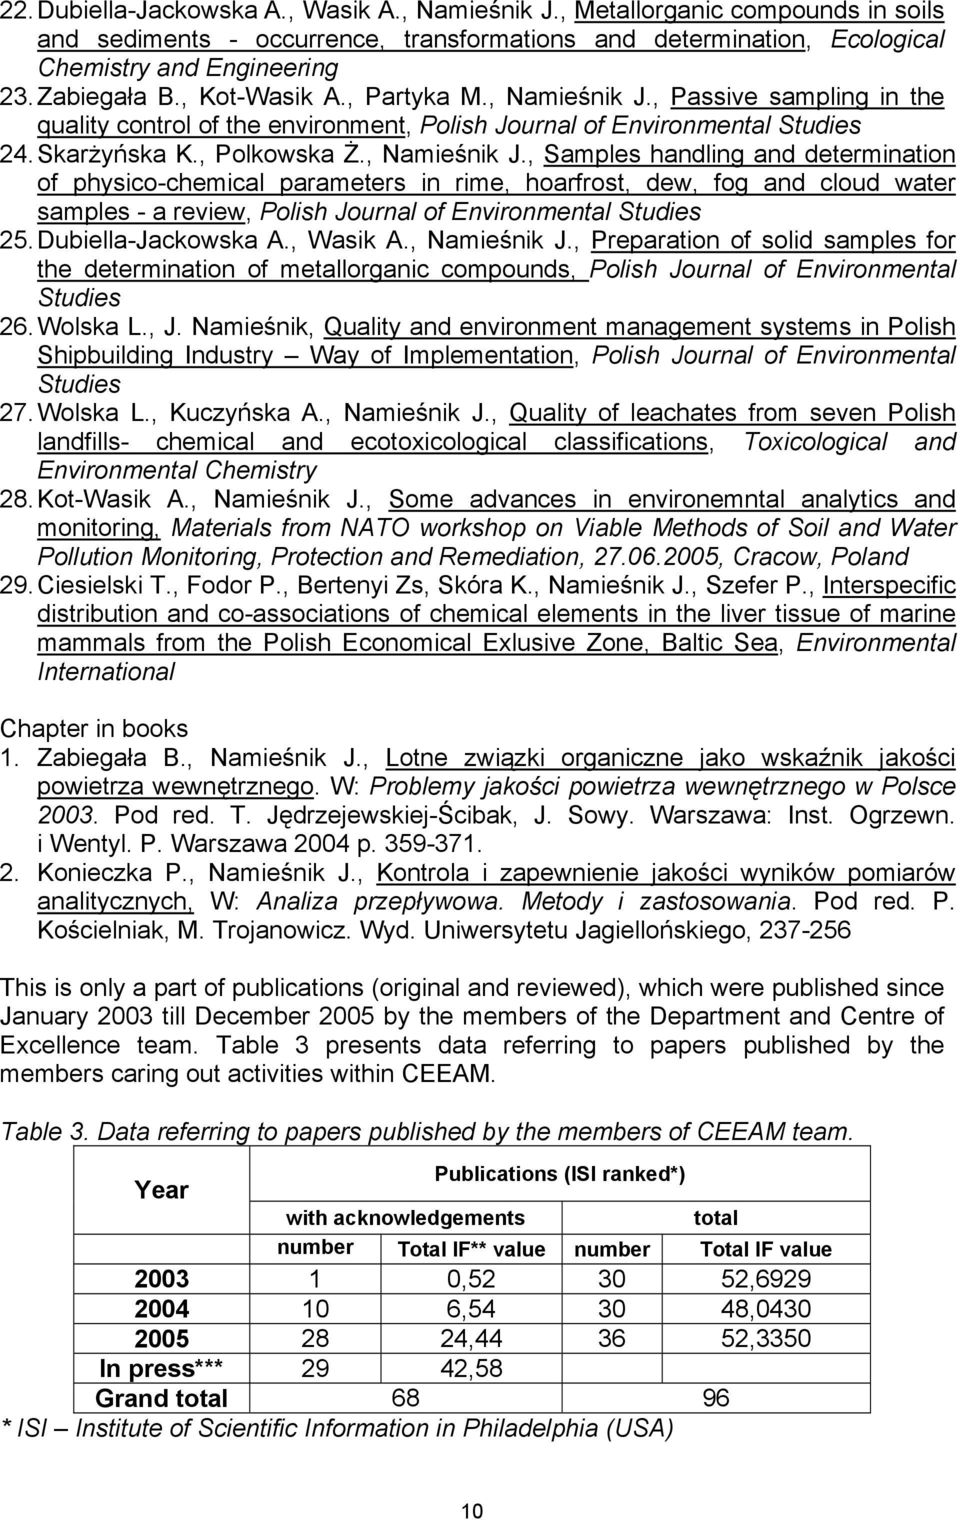 , Passive sampling in the quality control of the environment, Polish Journal of Environmental Studies 24. Skarżyńska K., Polkowska Ż., Namieśnik J.